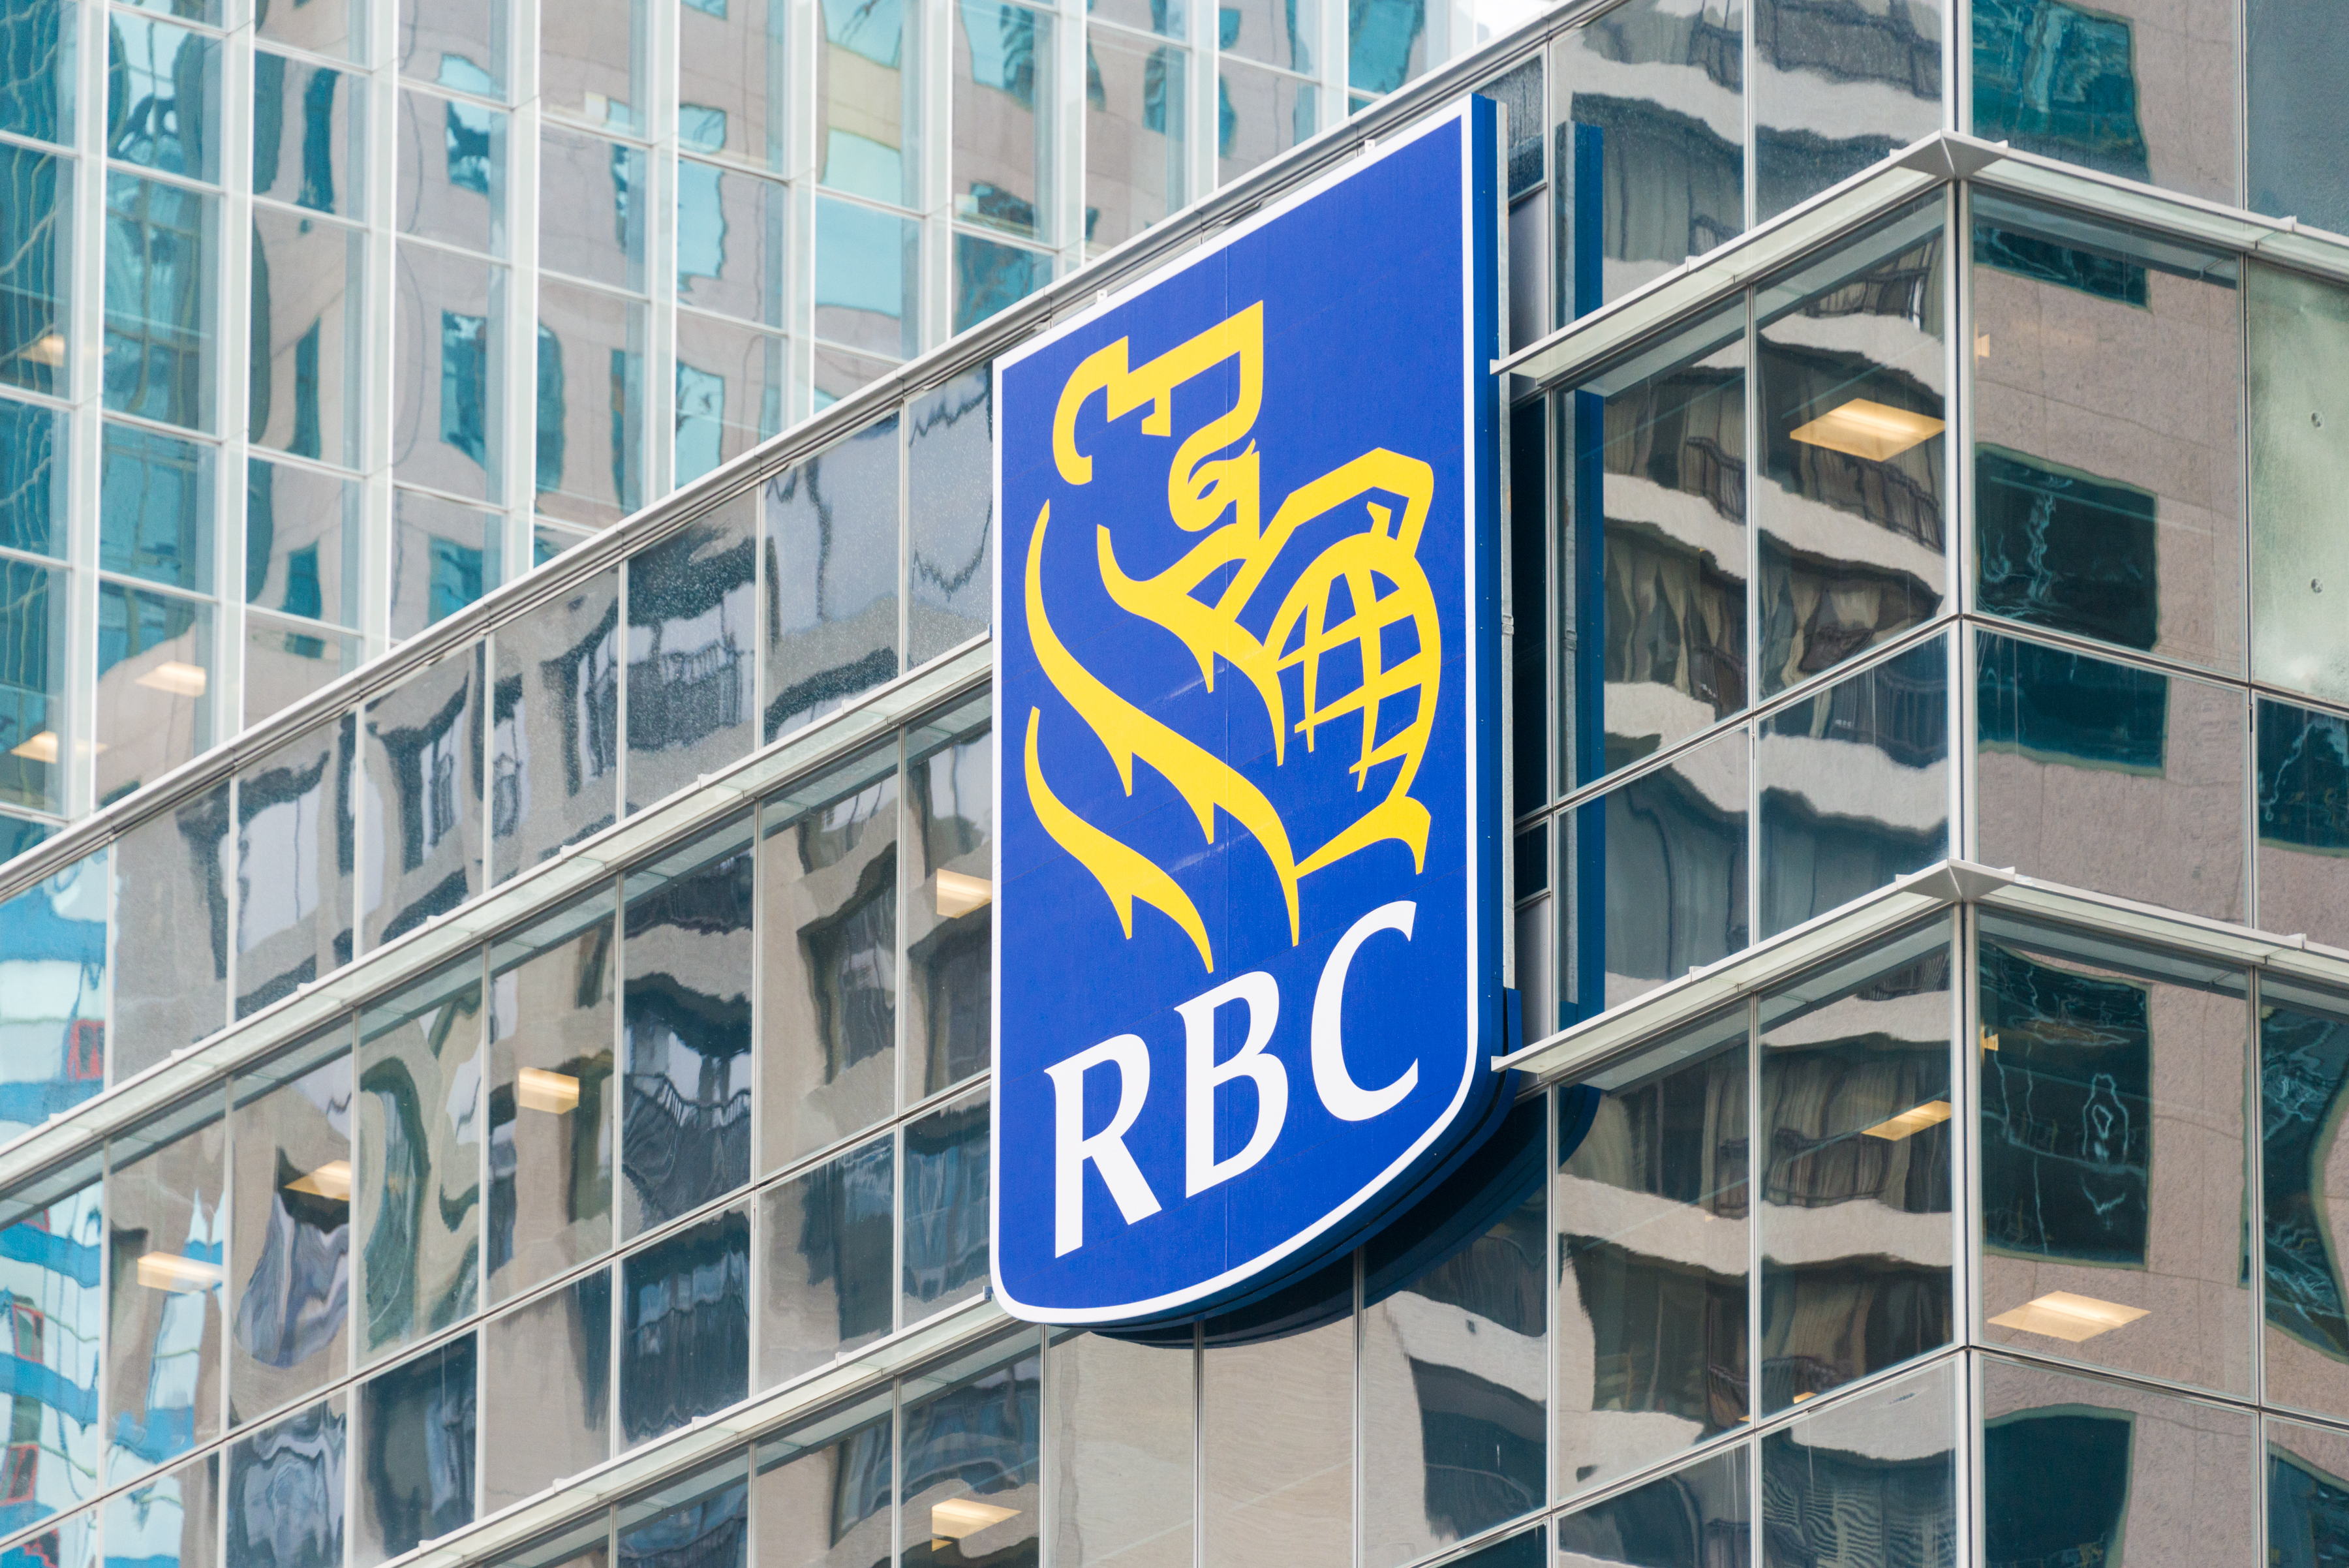 The symbol RBC on the glass facade of a building. The Royal